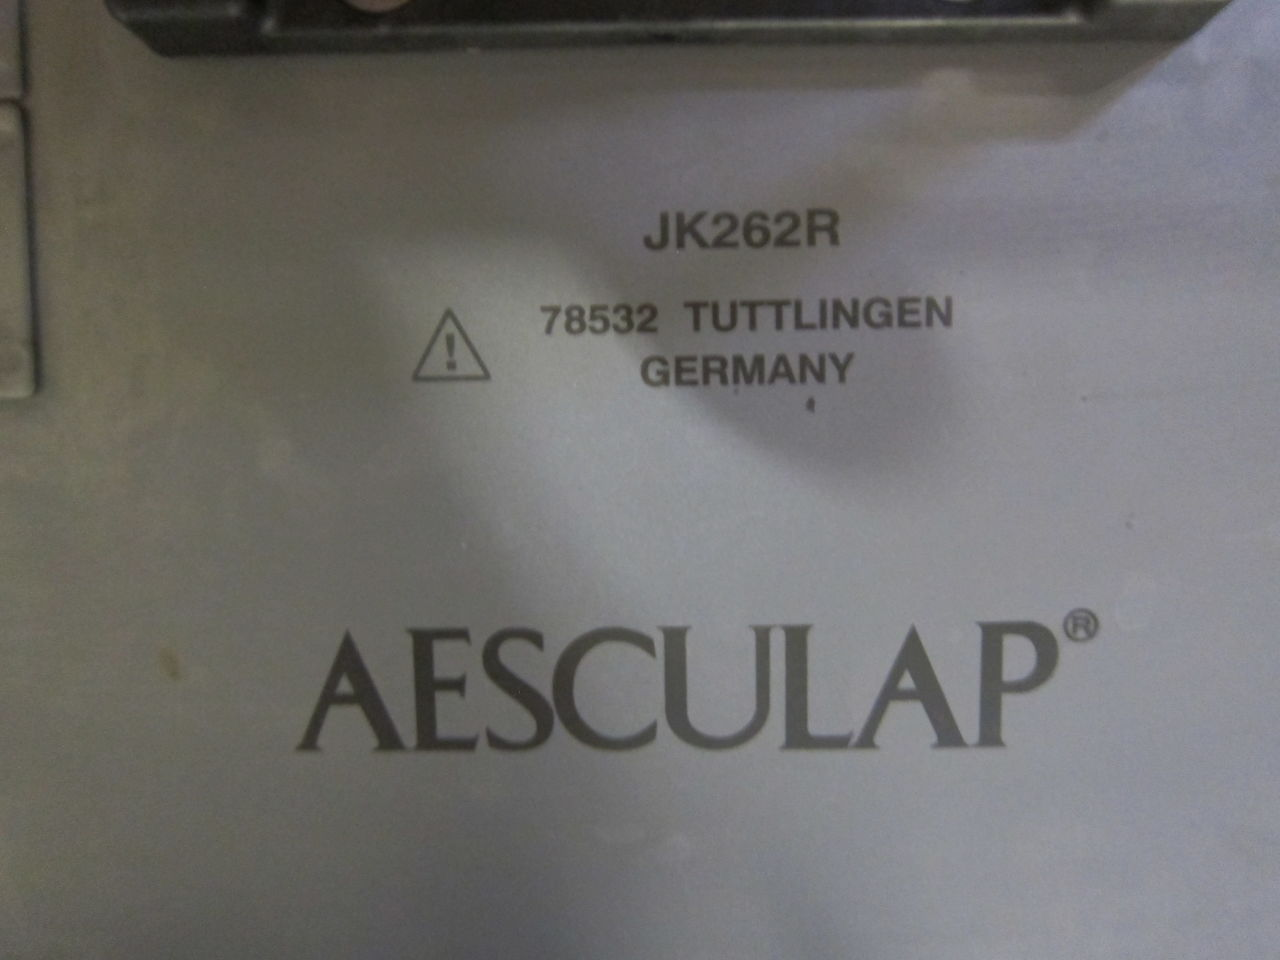 AESCULAP JK262R  - Lot of 2 Surgical Cases